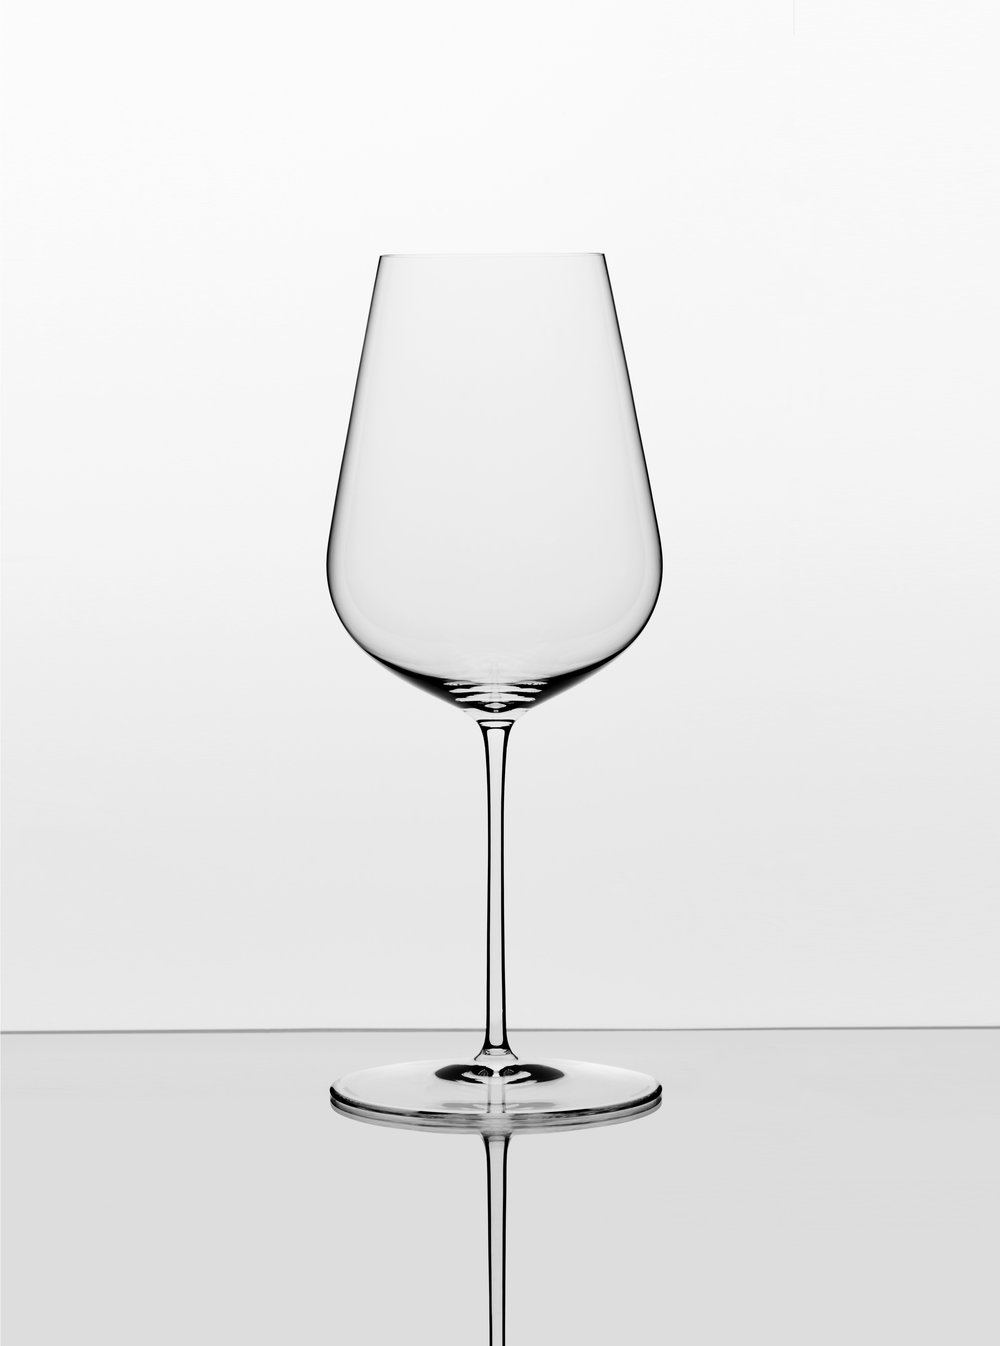 "The Wine Glass. - The only stemmed glass you will need to enjoy every wine at its best.Use this glass for every wine, whatever its colour, including sparkling wine, port, sherry, sweet wines and anything else you want to savour and enjoy to the fullest.This shape has been specially designed to maximise your enjoyment of all wines' aromas, flavours and textures in the most practical way possible.""This glass shatters the biggest myth about wine""- Fast Company Magazine"